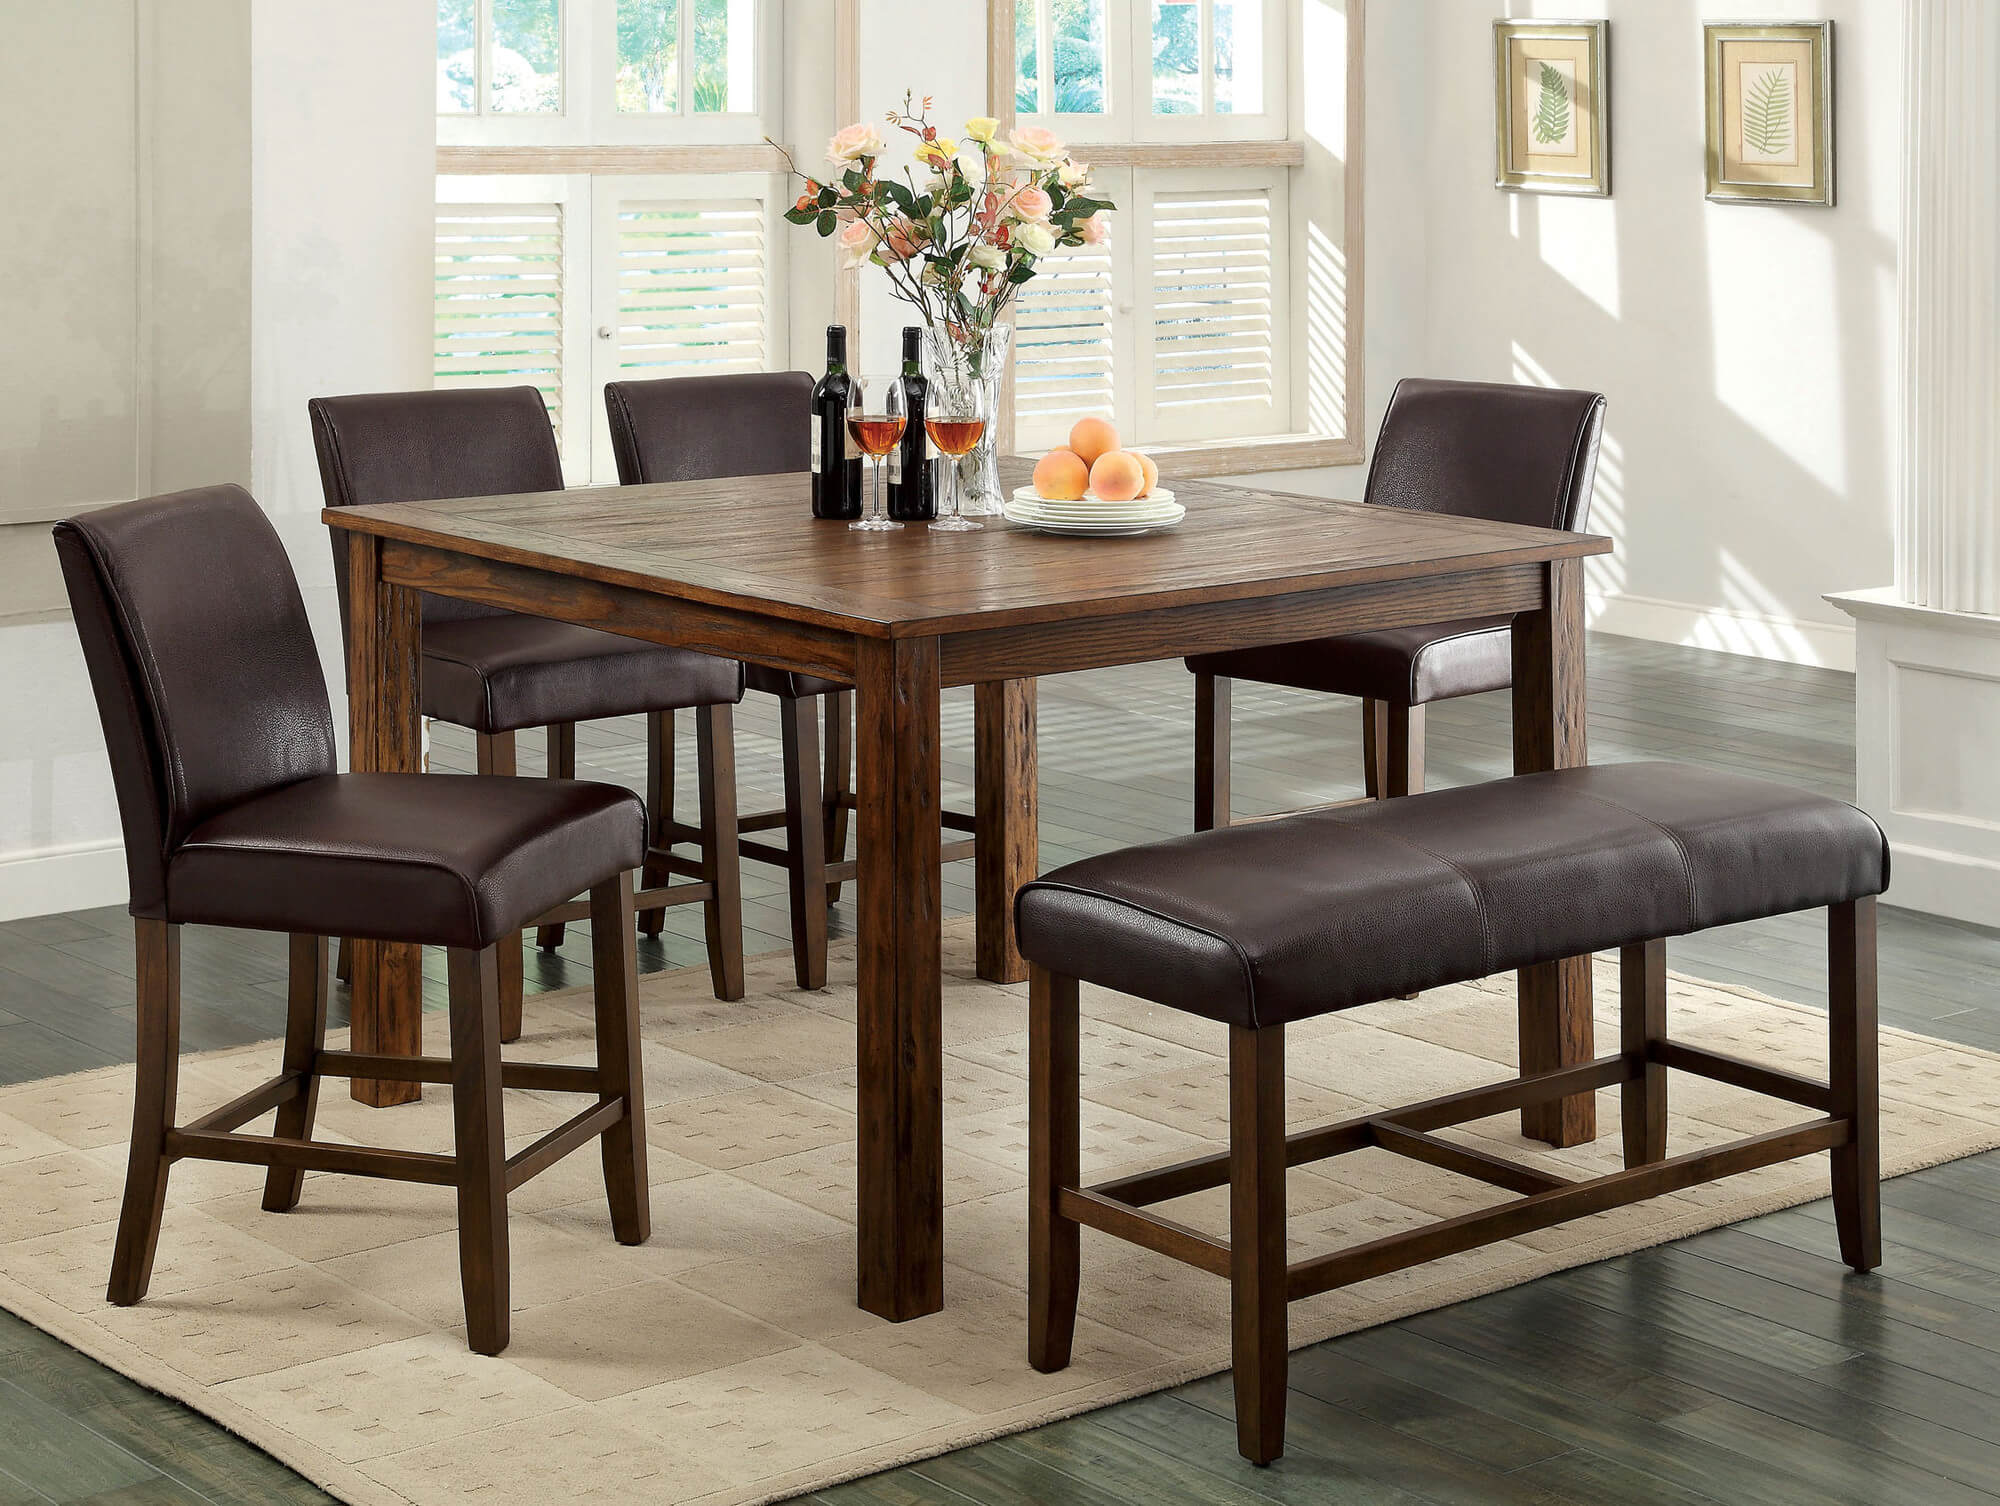 Modern Dining Room Tables Solid Wood Busca Furniture With